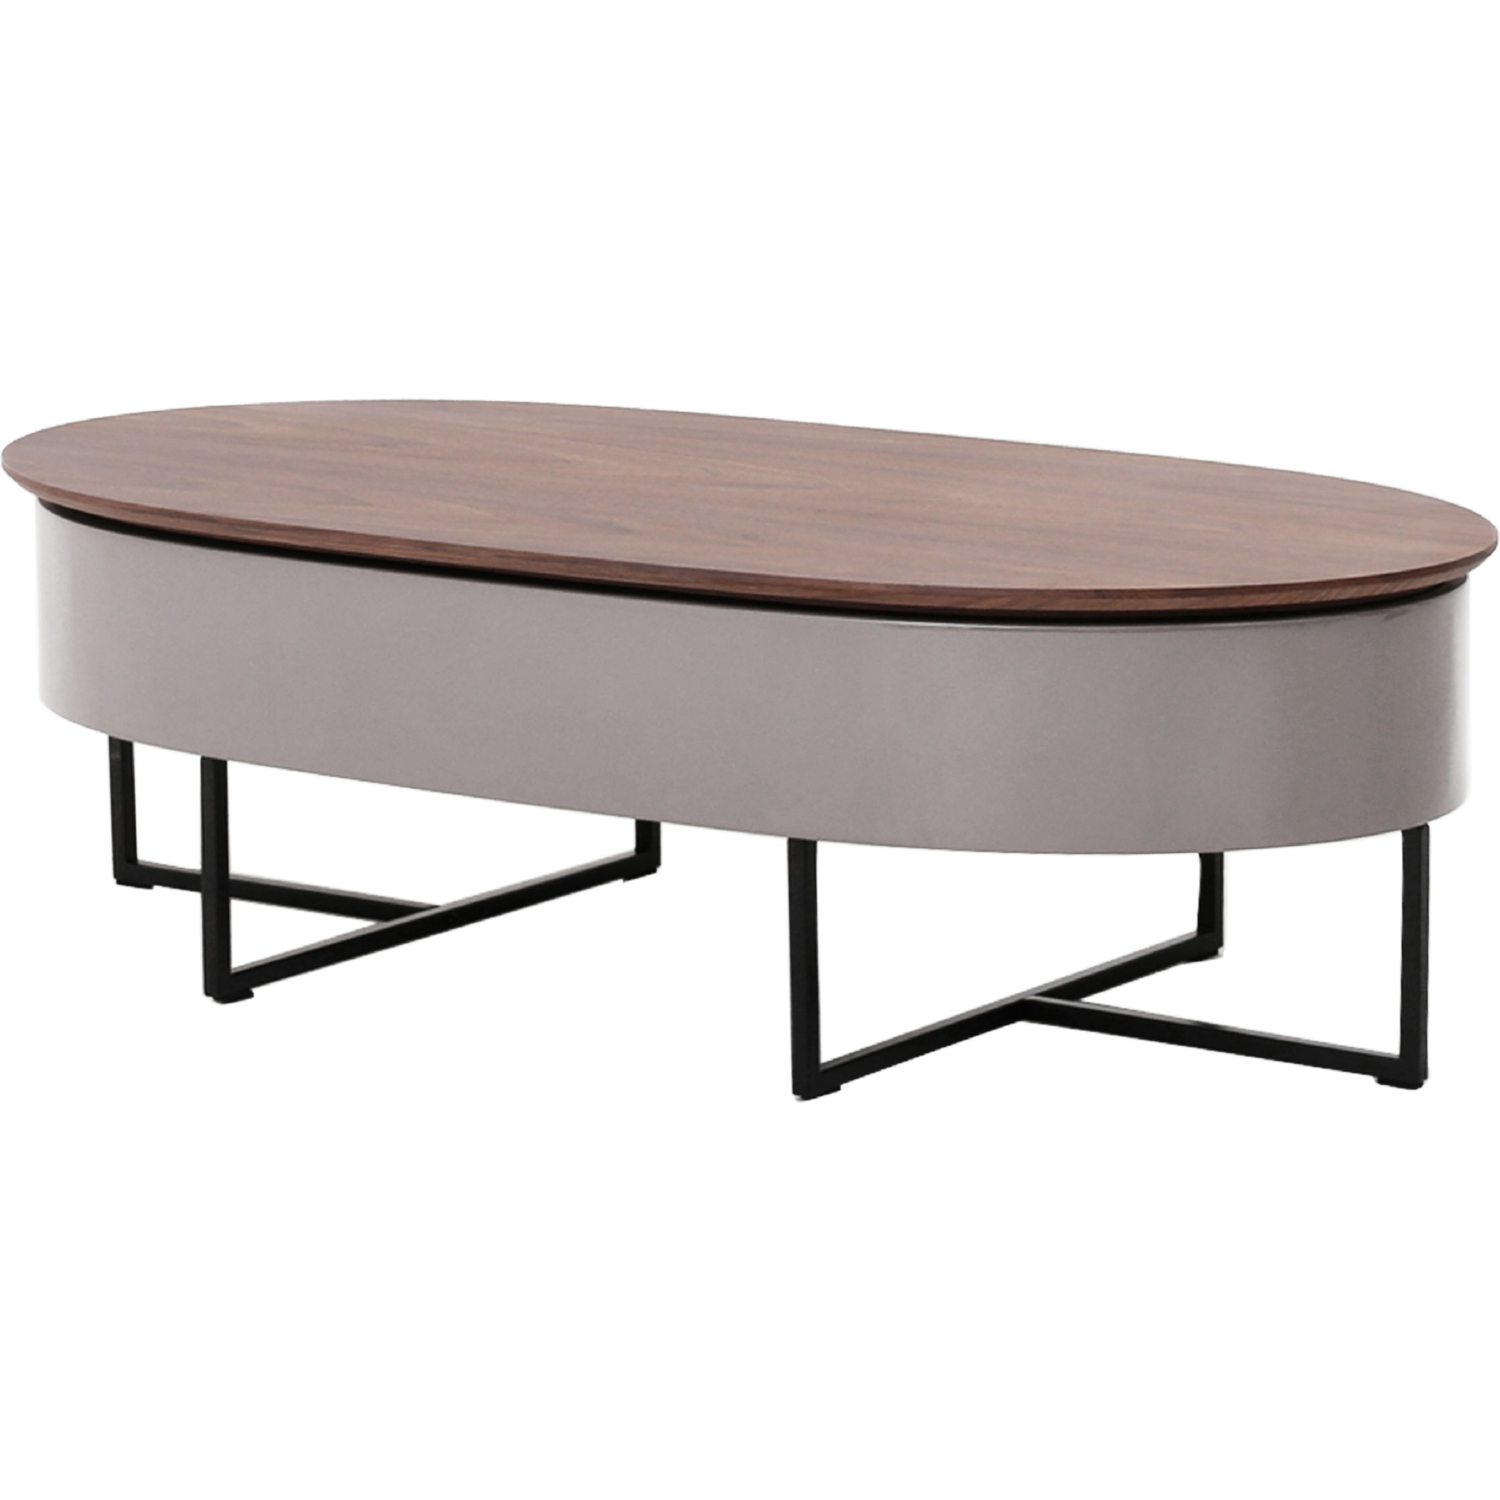 Oval Lift Top Coffee Table Part - 39: Hansel Oval Lift-Top Coffee Table In Walnut U0026 Gray On Black Iron Legs